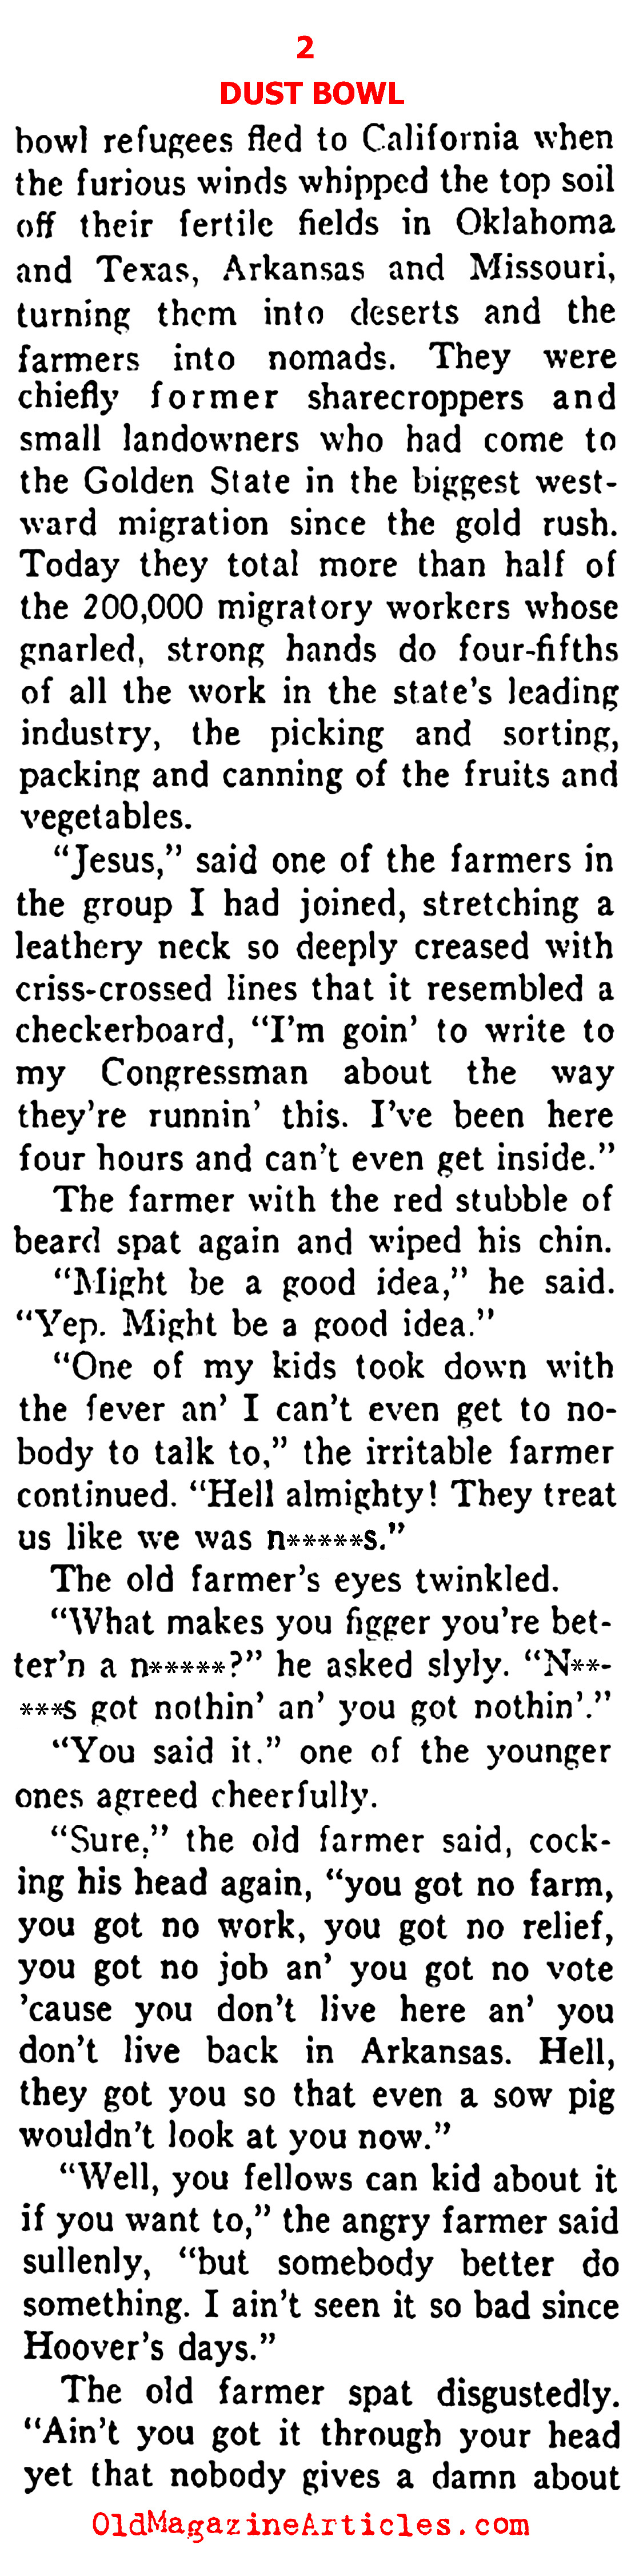 The Okies and the Dust Bowl (Ken Magazine, 1938)